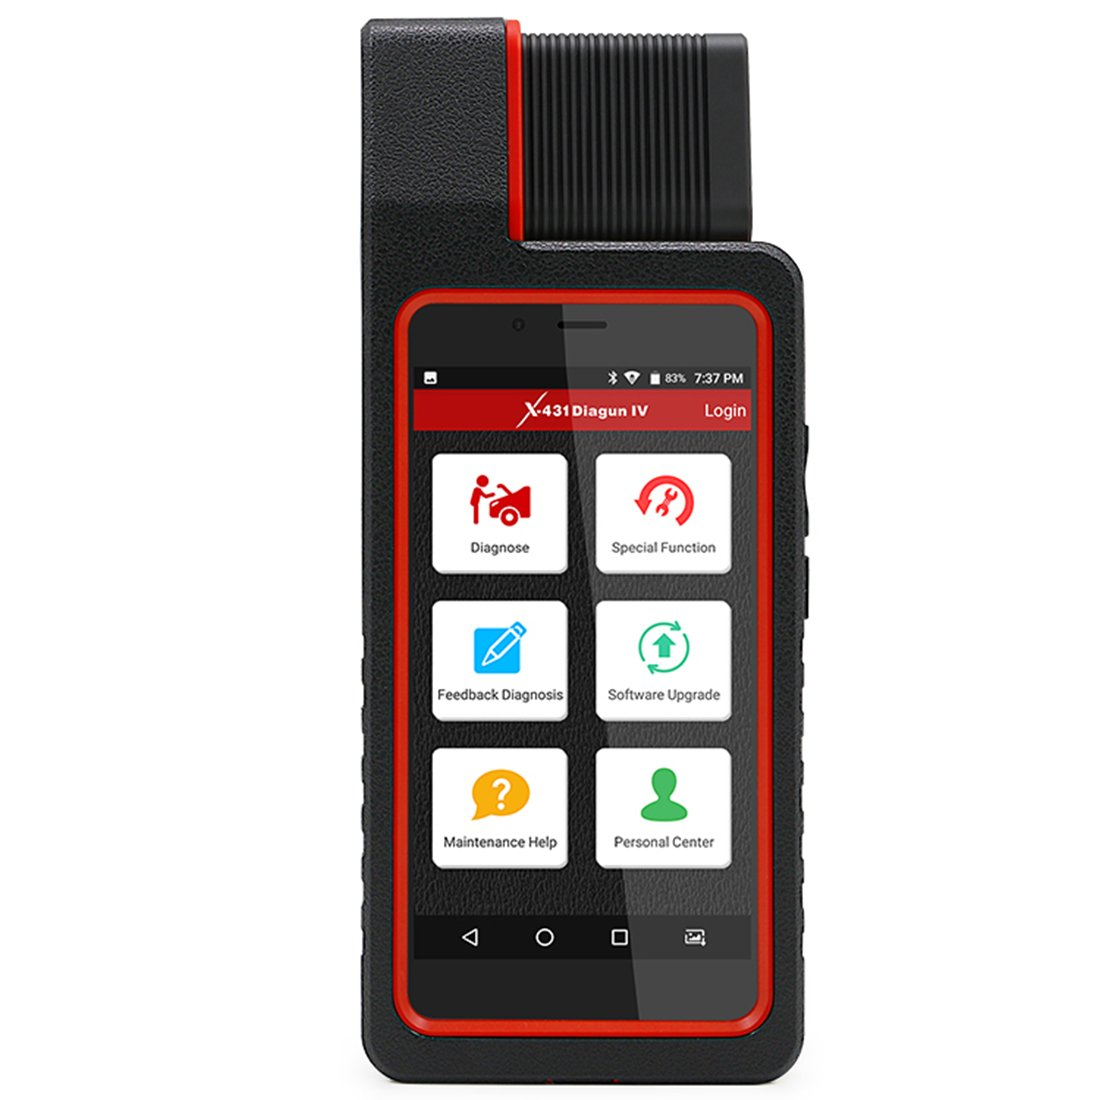 Launch X431 Diagun IV Full System Professional OBD2 Car Diagnostic Auto Car Scanner One-click 2 years free Update